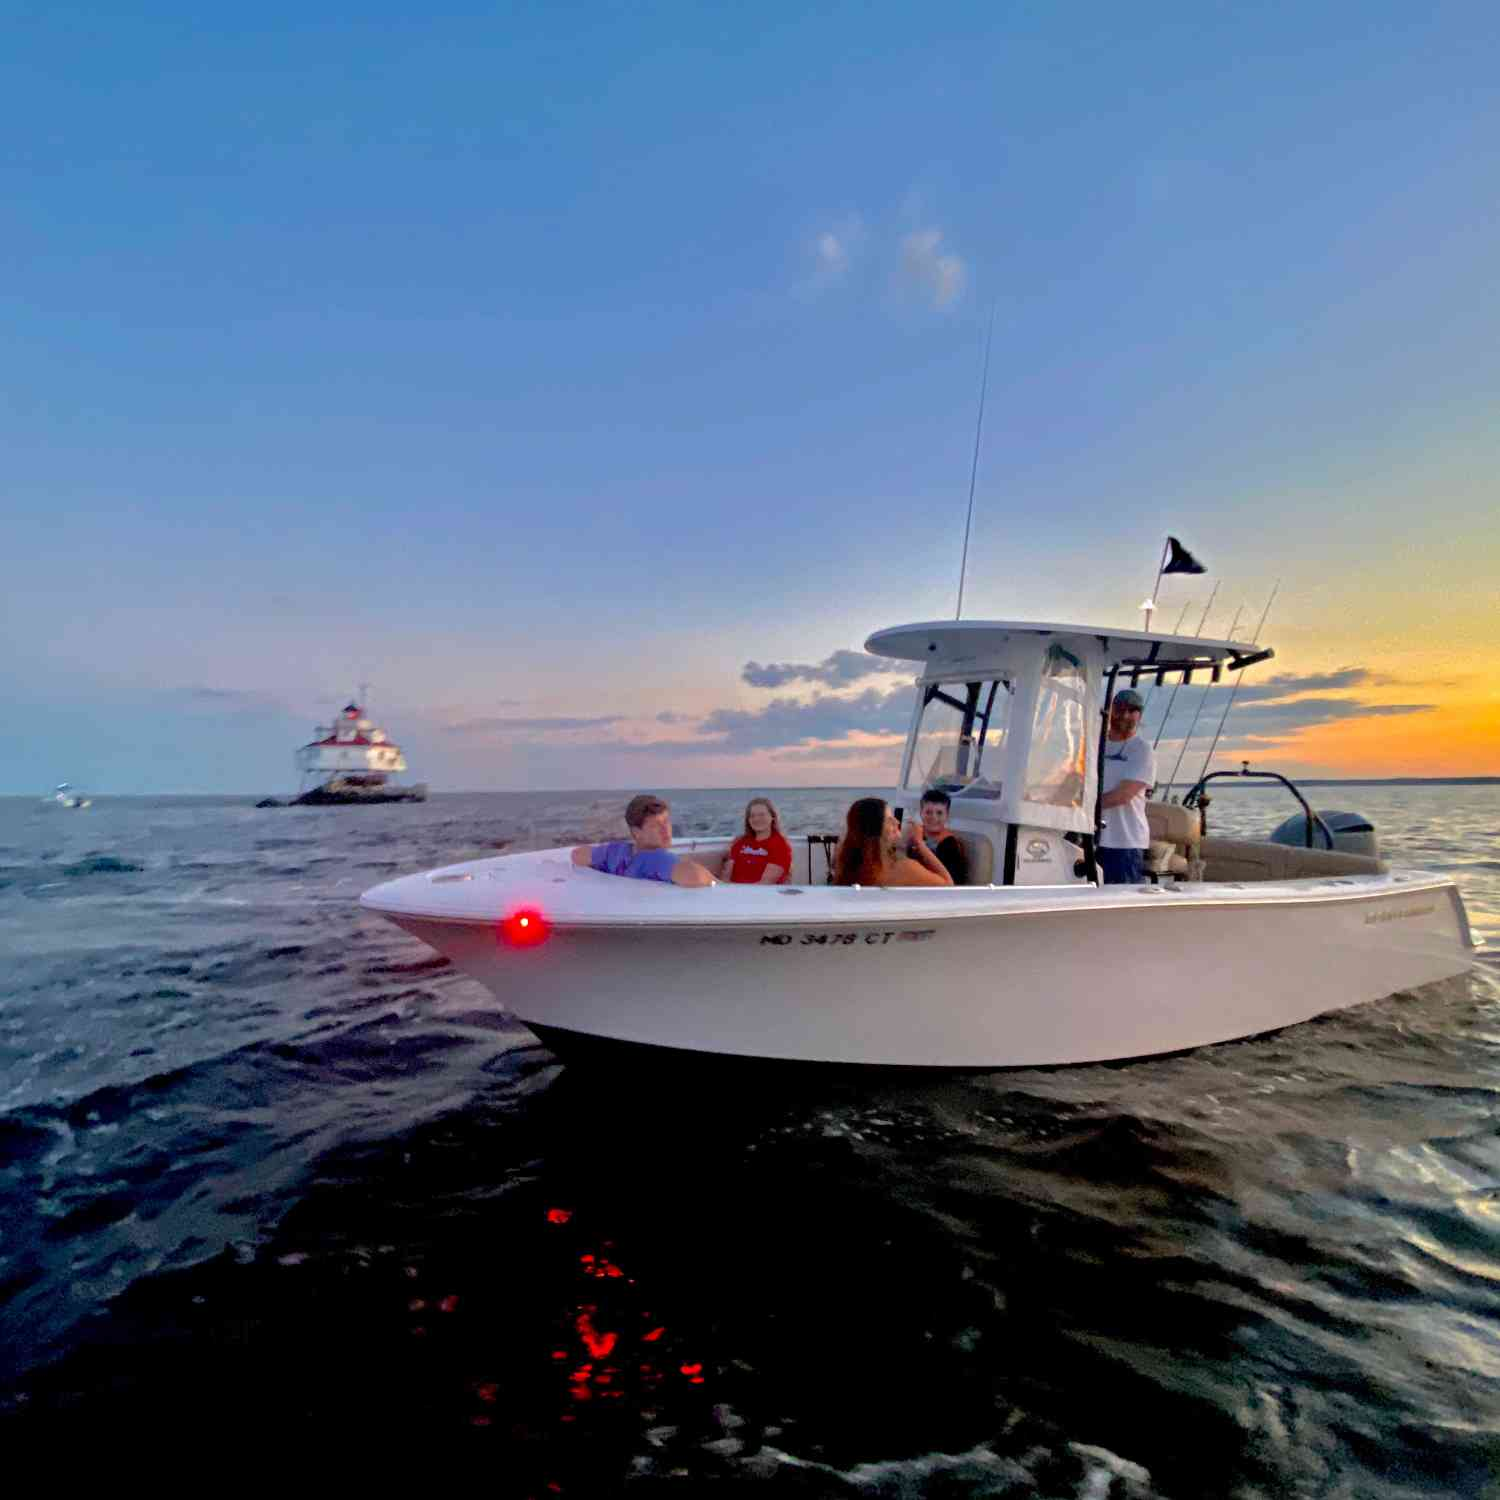 Title: Sunset at Thomas Point - On board their Sportsman Heritage 231 Center Console - Location: Thomas Point Shoal Lighthouse Annapolis, Maryland. Participating in the Photo Contest #SportsmanJune2020